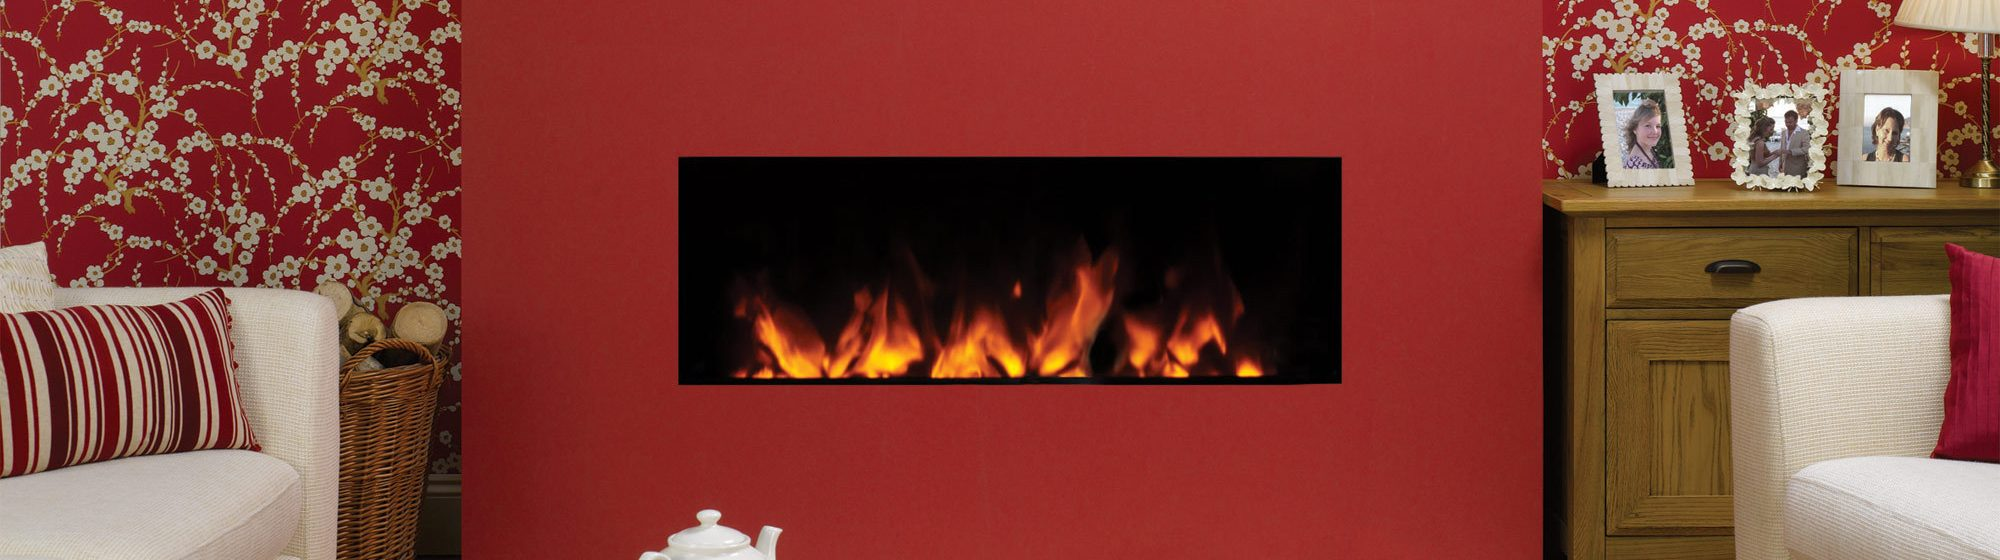 Electic Fire Header